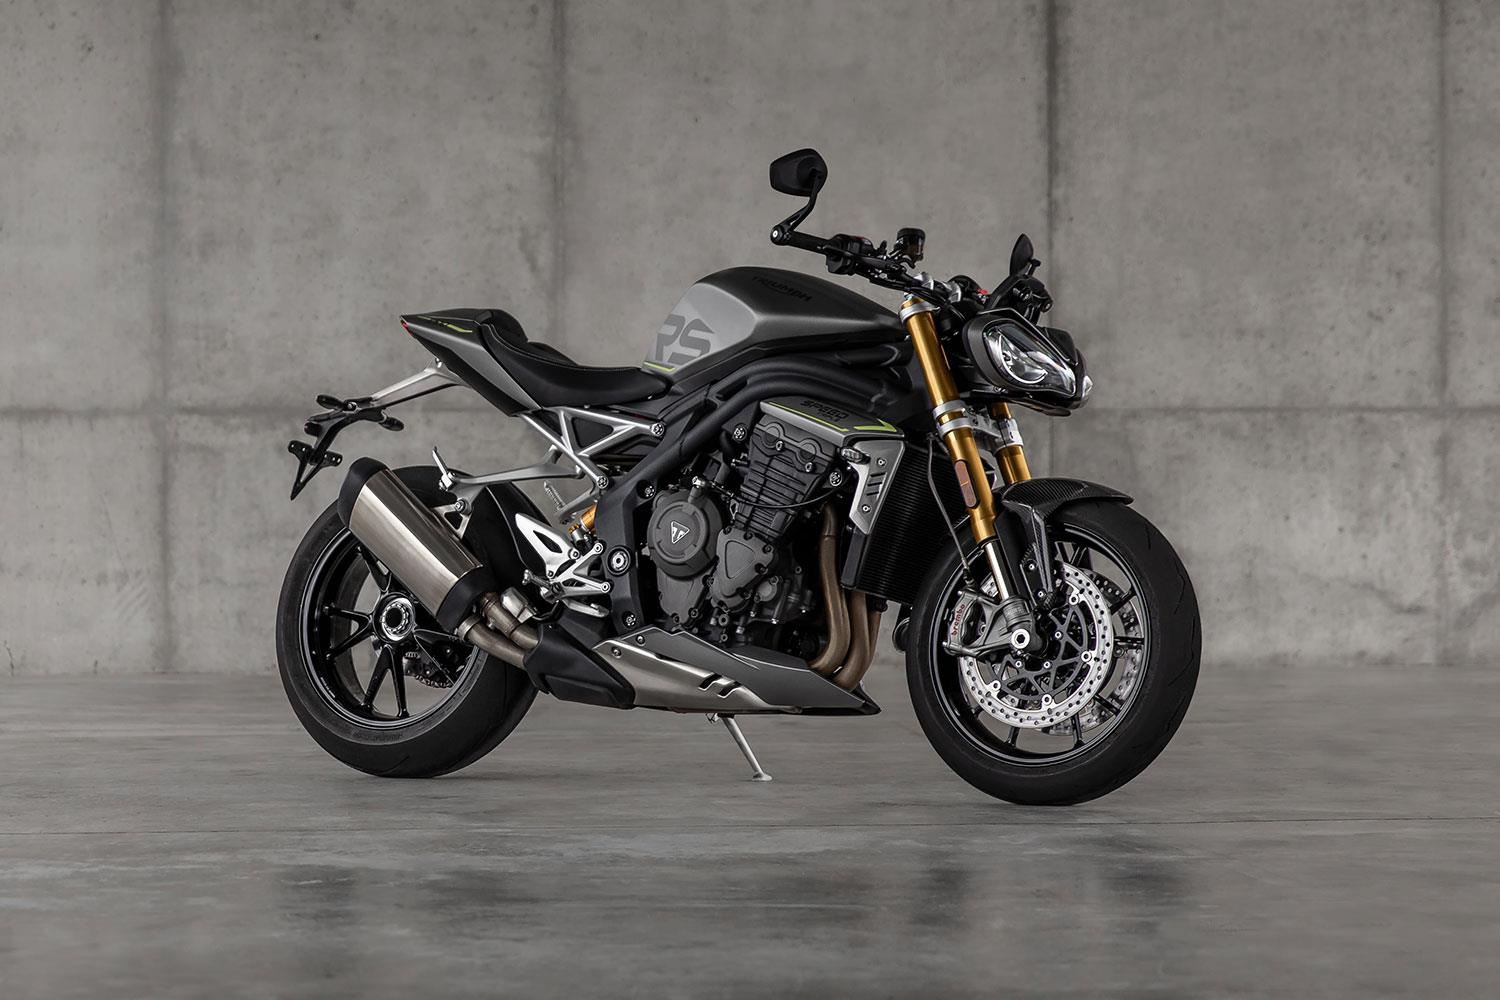 The speed of light: New Triumph Speed Triple 1200 RS enters the super naked battle